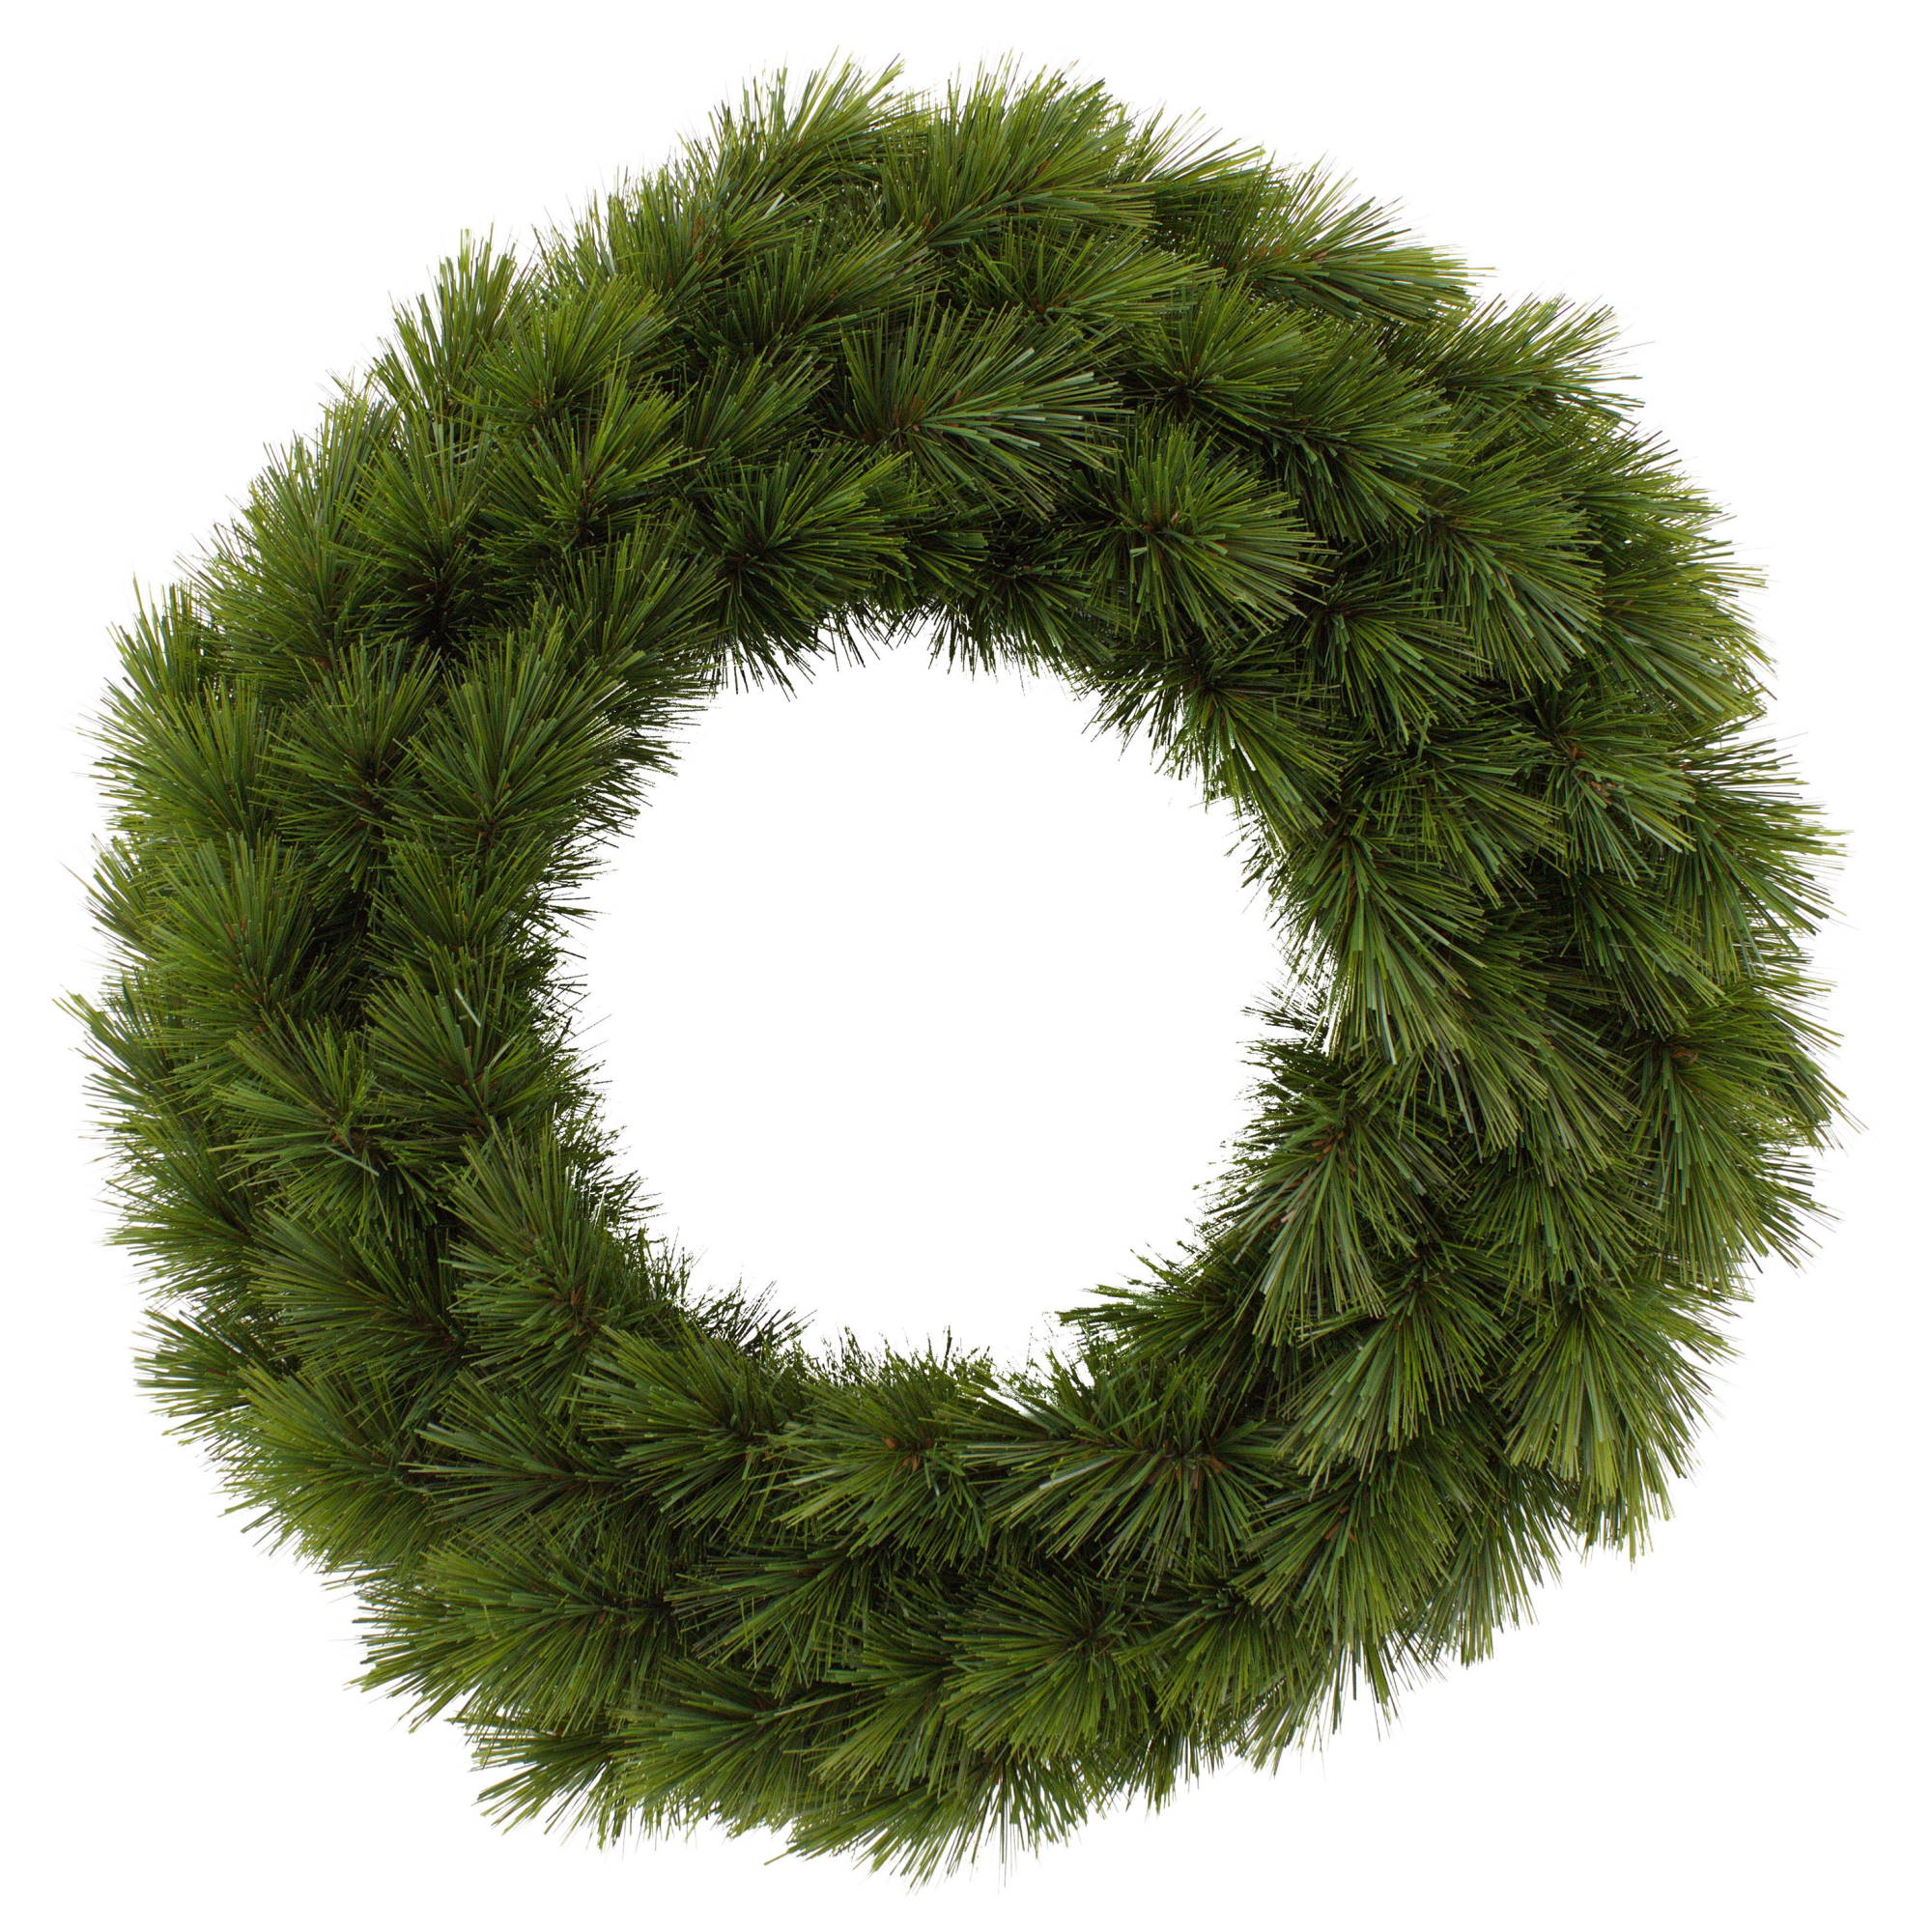 Camden Green Christmas Wreath - 60cm